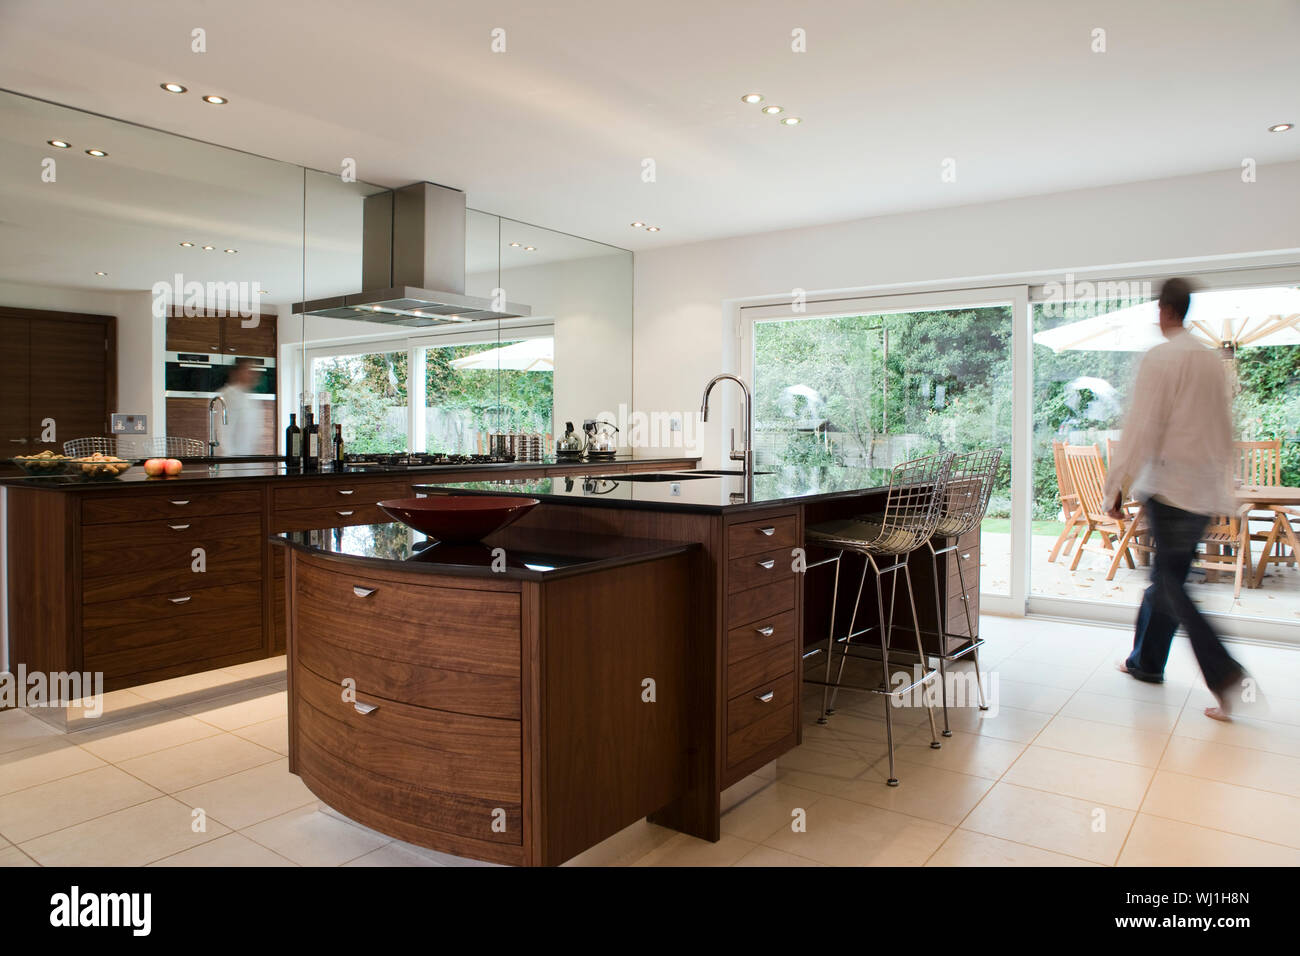 Blurred Man Walking In Modern And Spacious Kitchen With Dining Area In The Porch Stock Photo Alamy